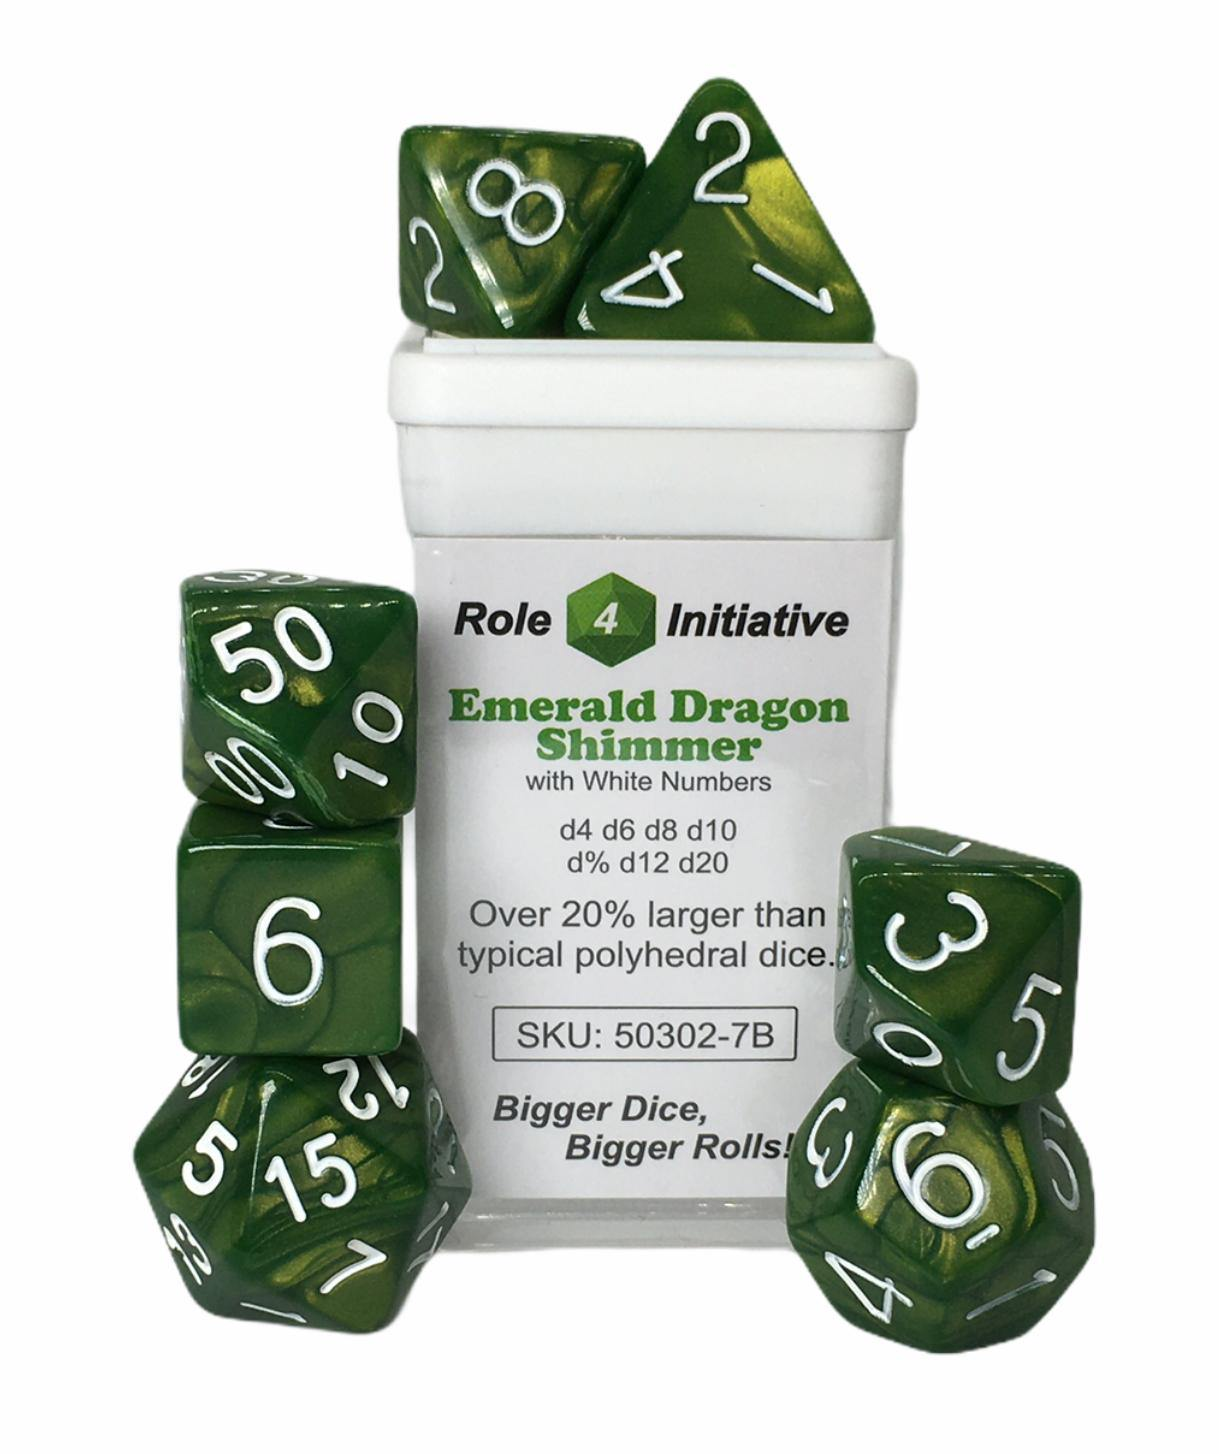 Emerald Dragon Shimmer w/ White Numbers